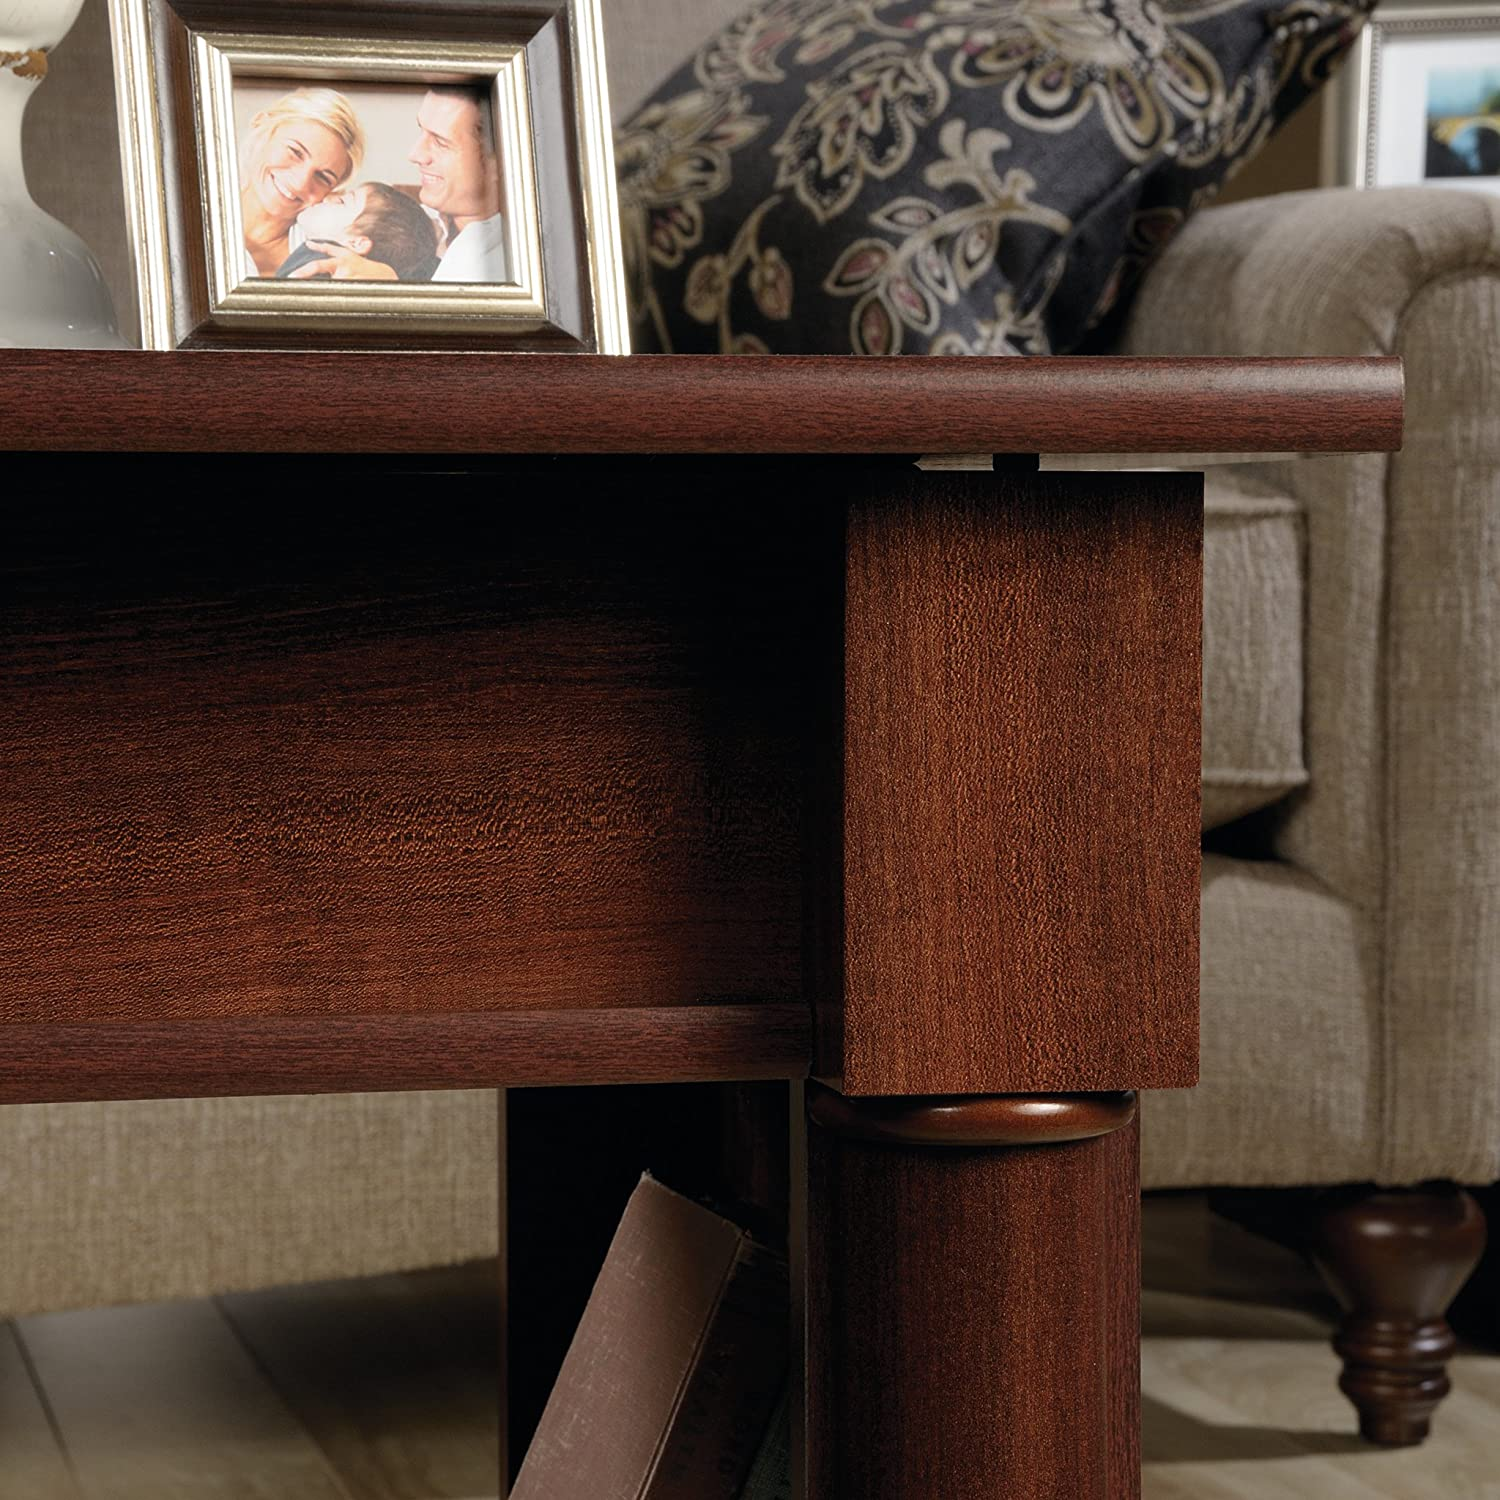 Sauder 420520 Lift-Top Coffee Table Select Cherry